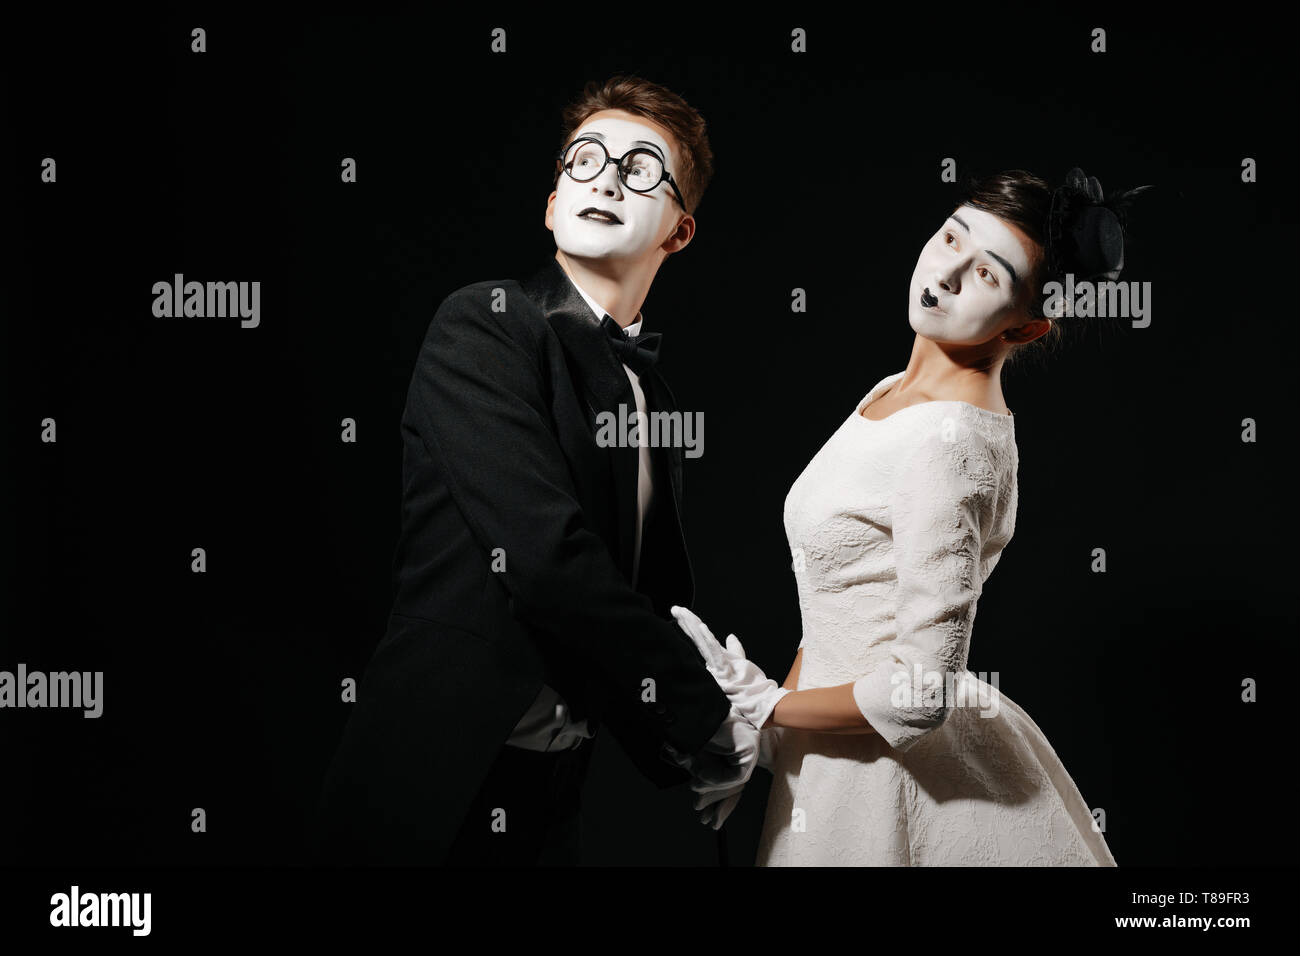 portrait of couple mime on black background. man in tuxedo and glasses and woman in white dress - Stock Image